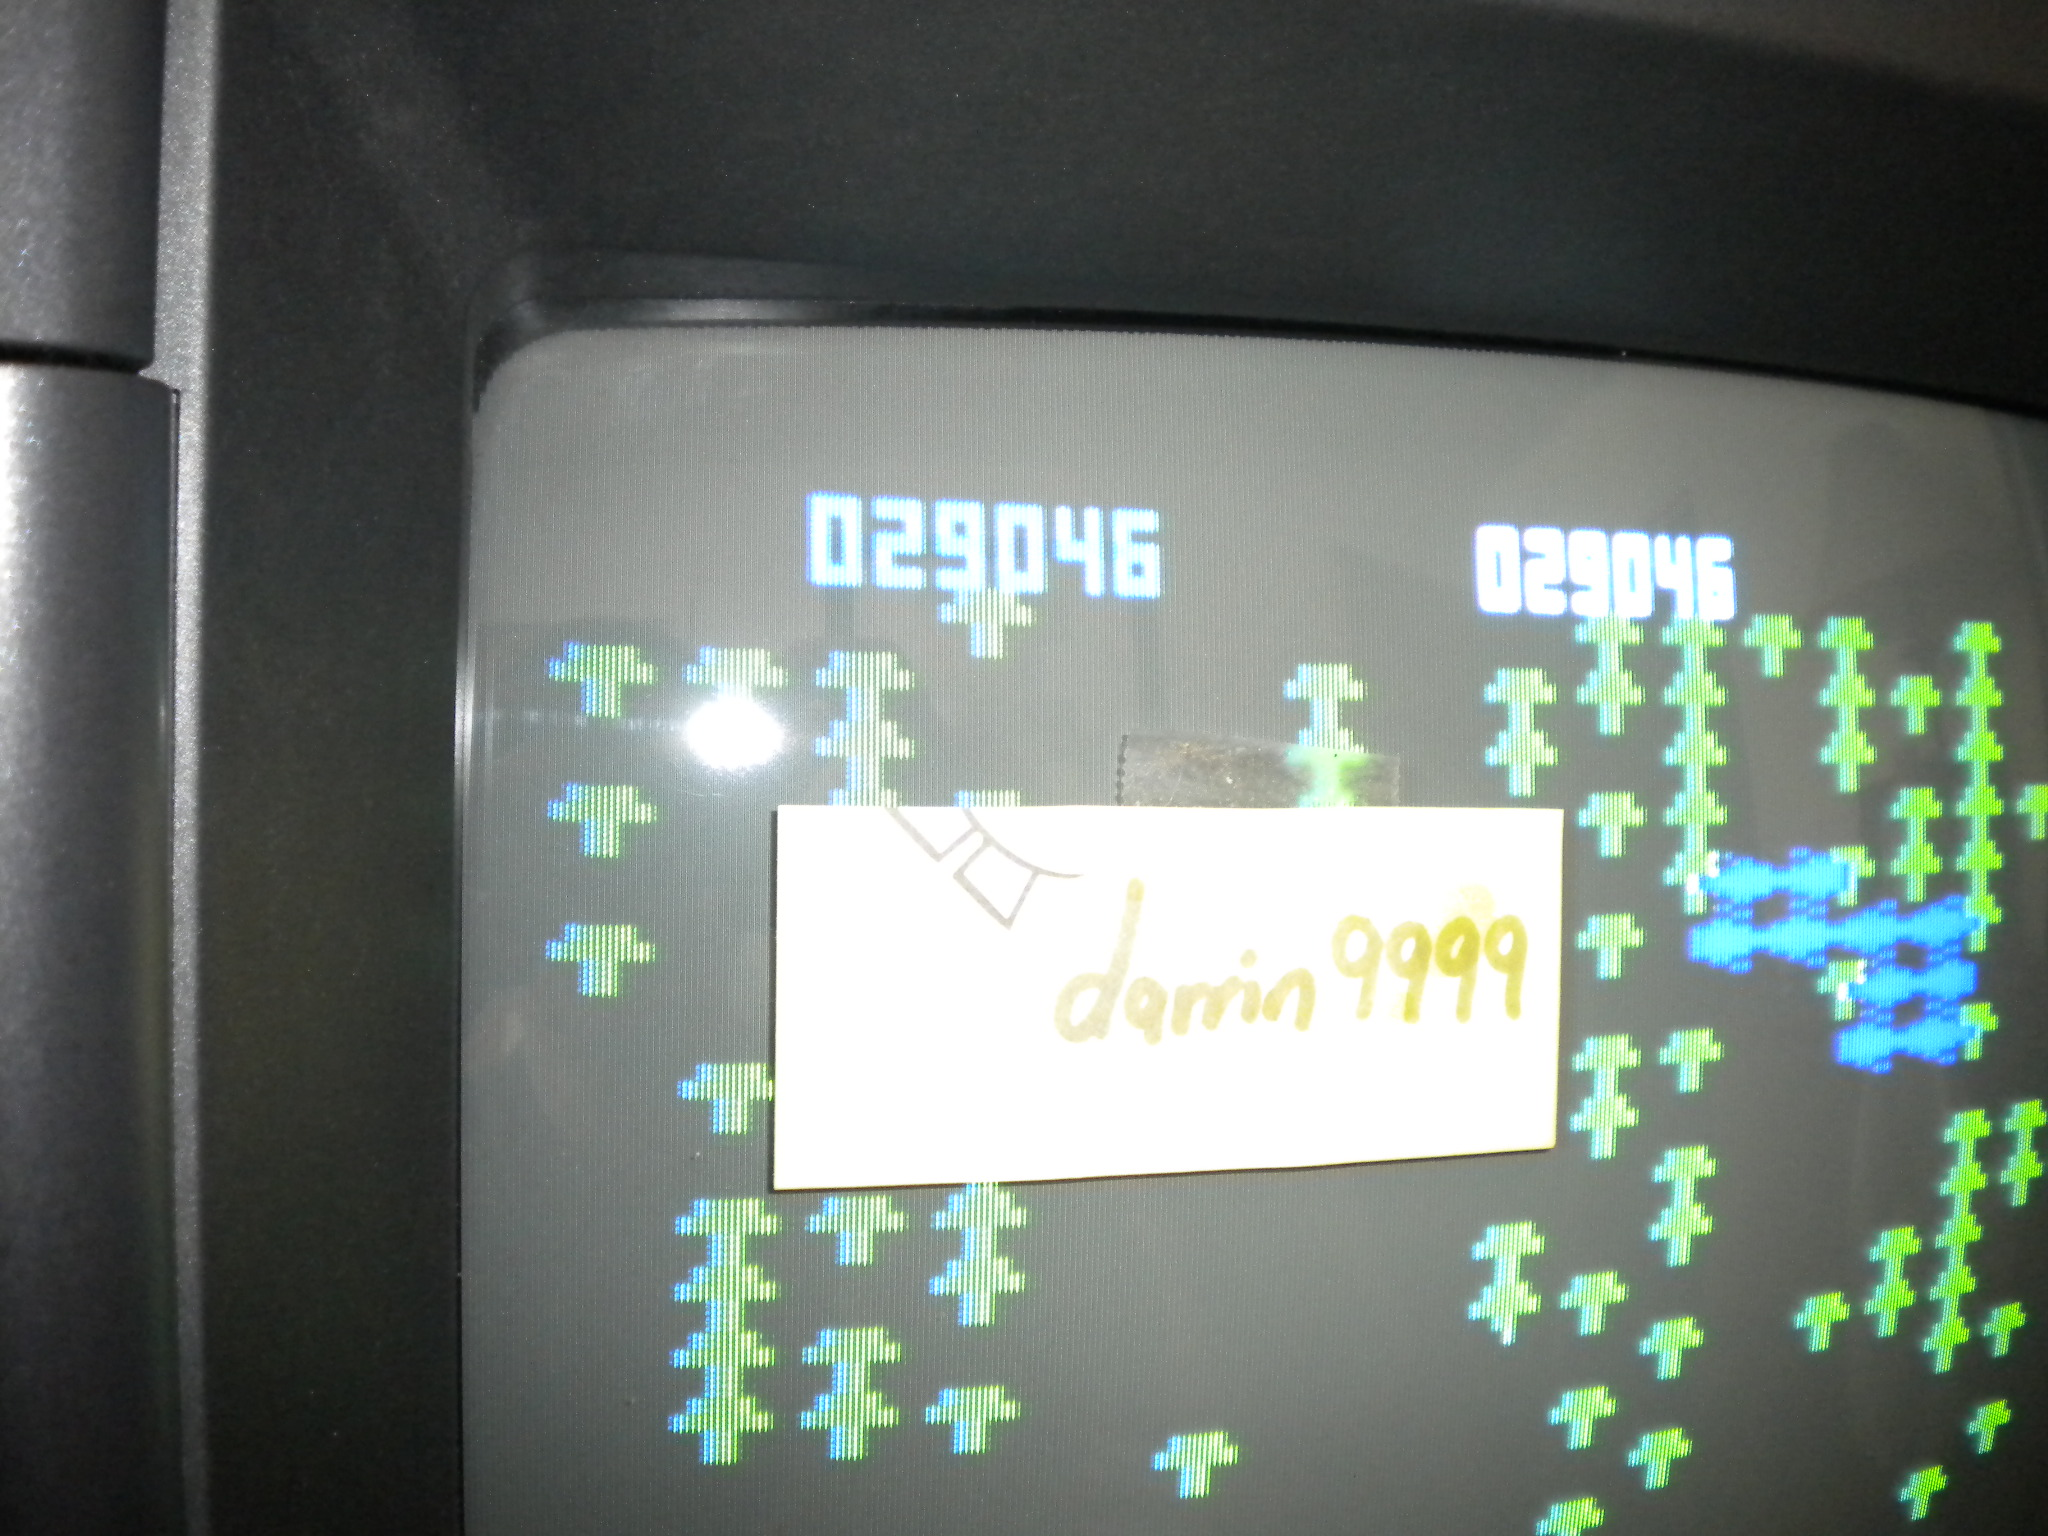 Centipede 29,046 points